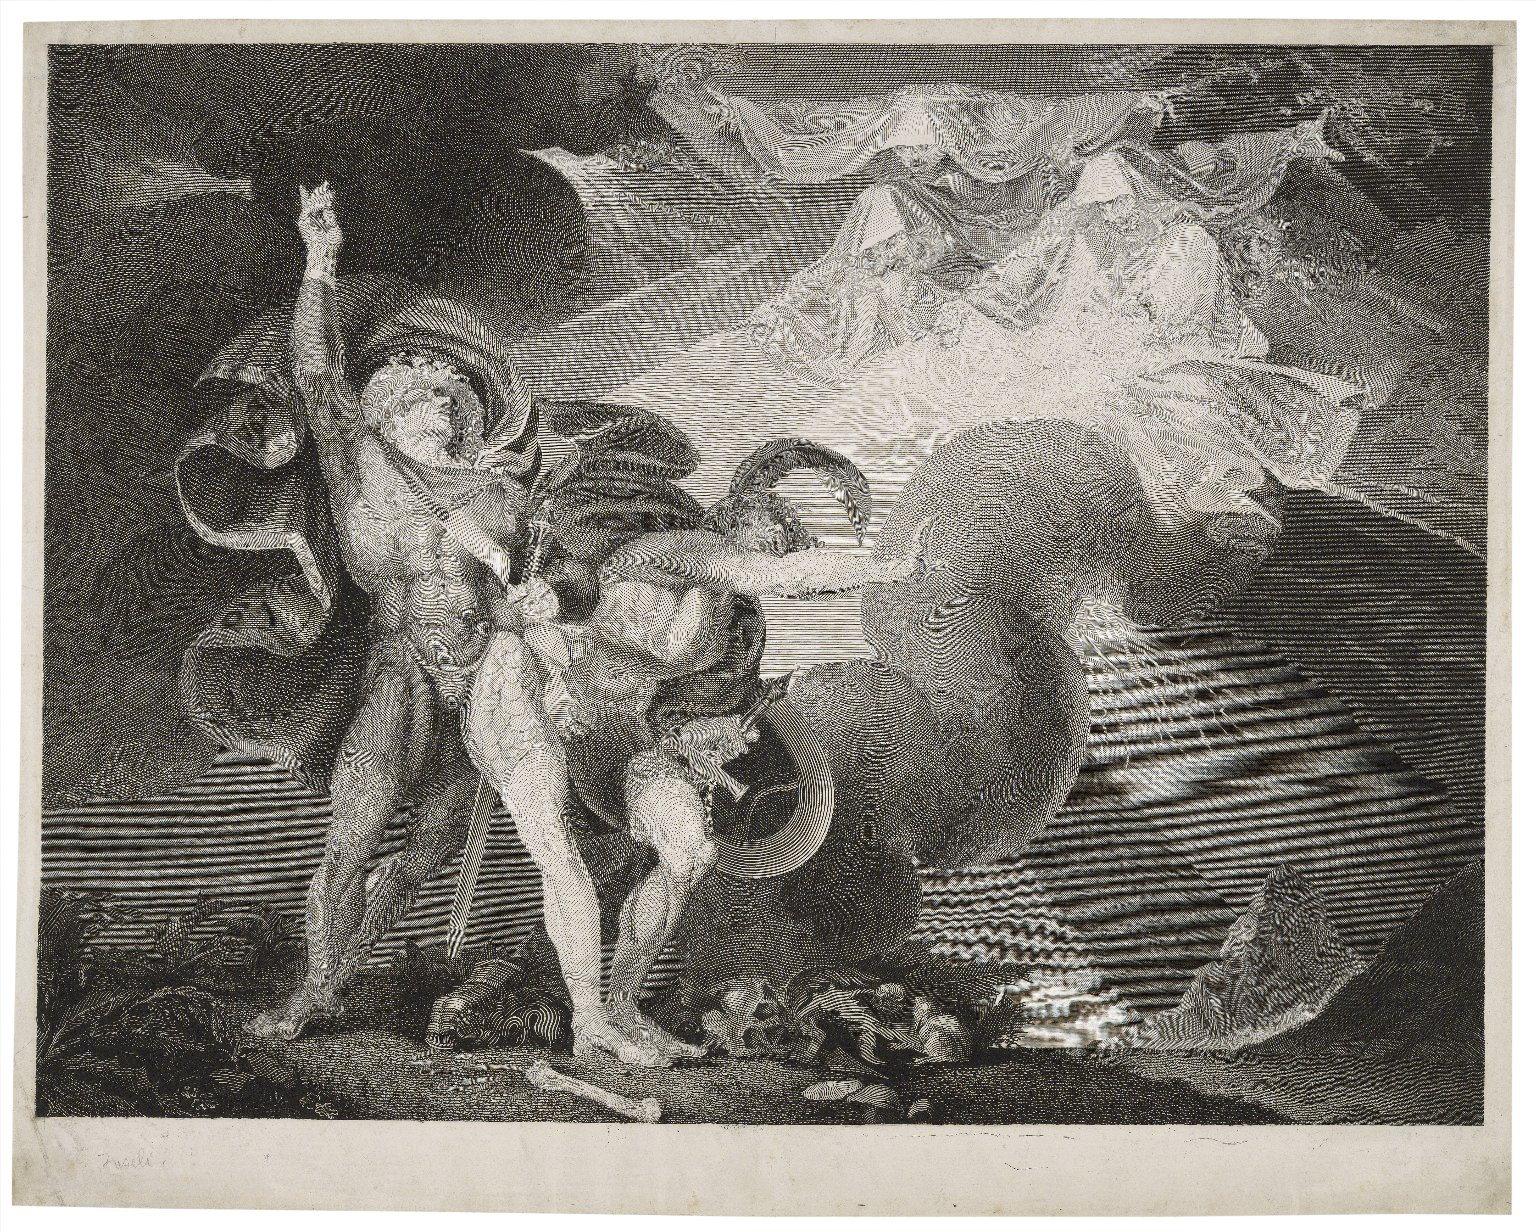 Macbeth, act I, scene III. A heath: Macbeth, Banquo, & three witches [graphic] / painted by H. Fuseli ; engraved by Jas. Caldwall.